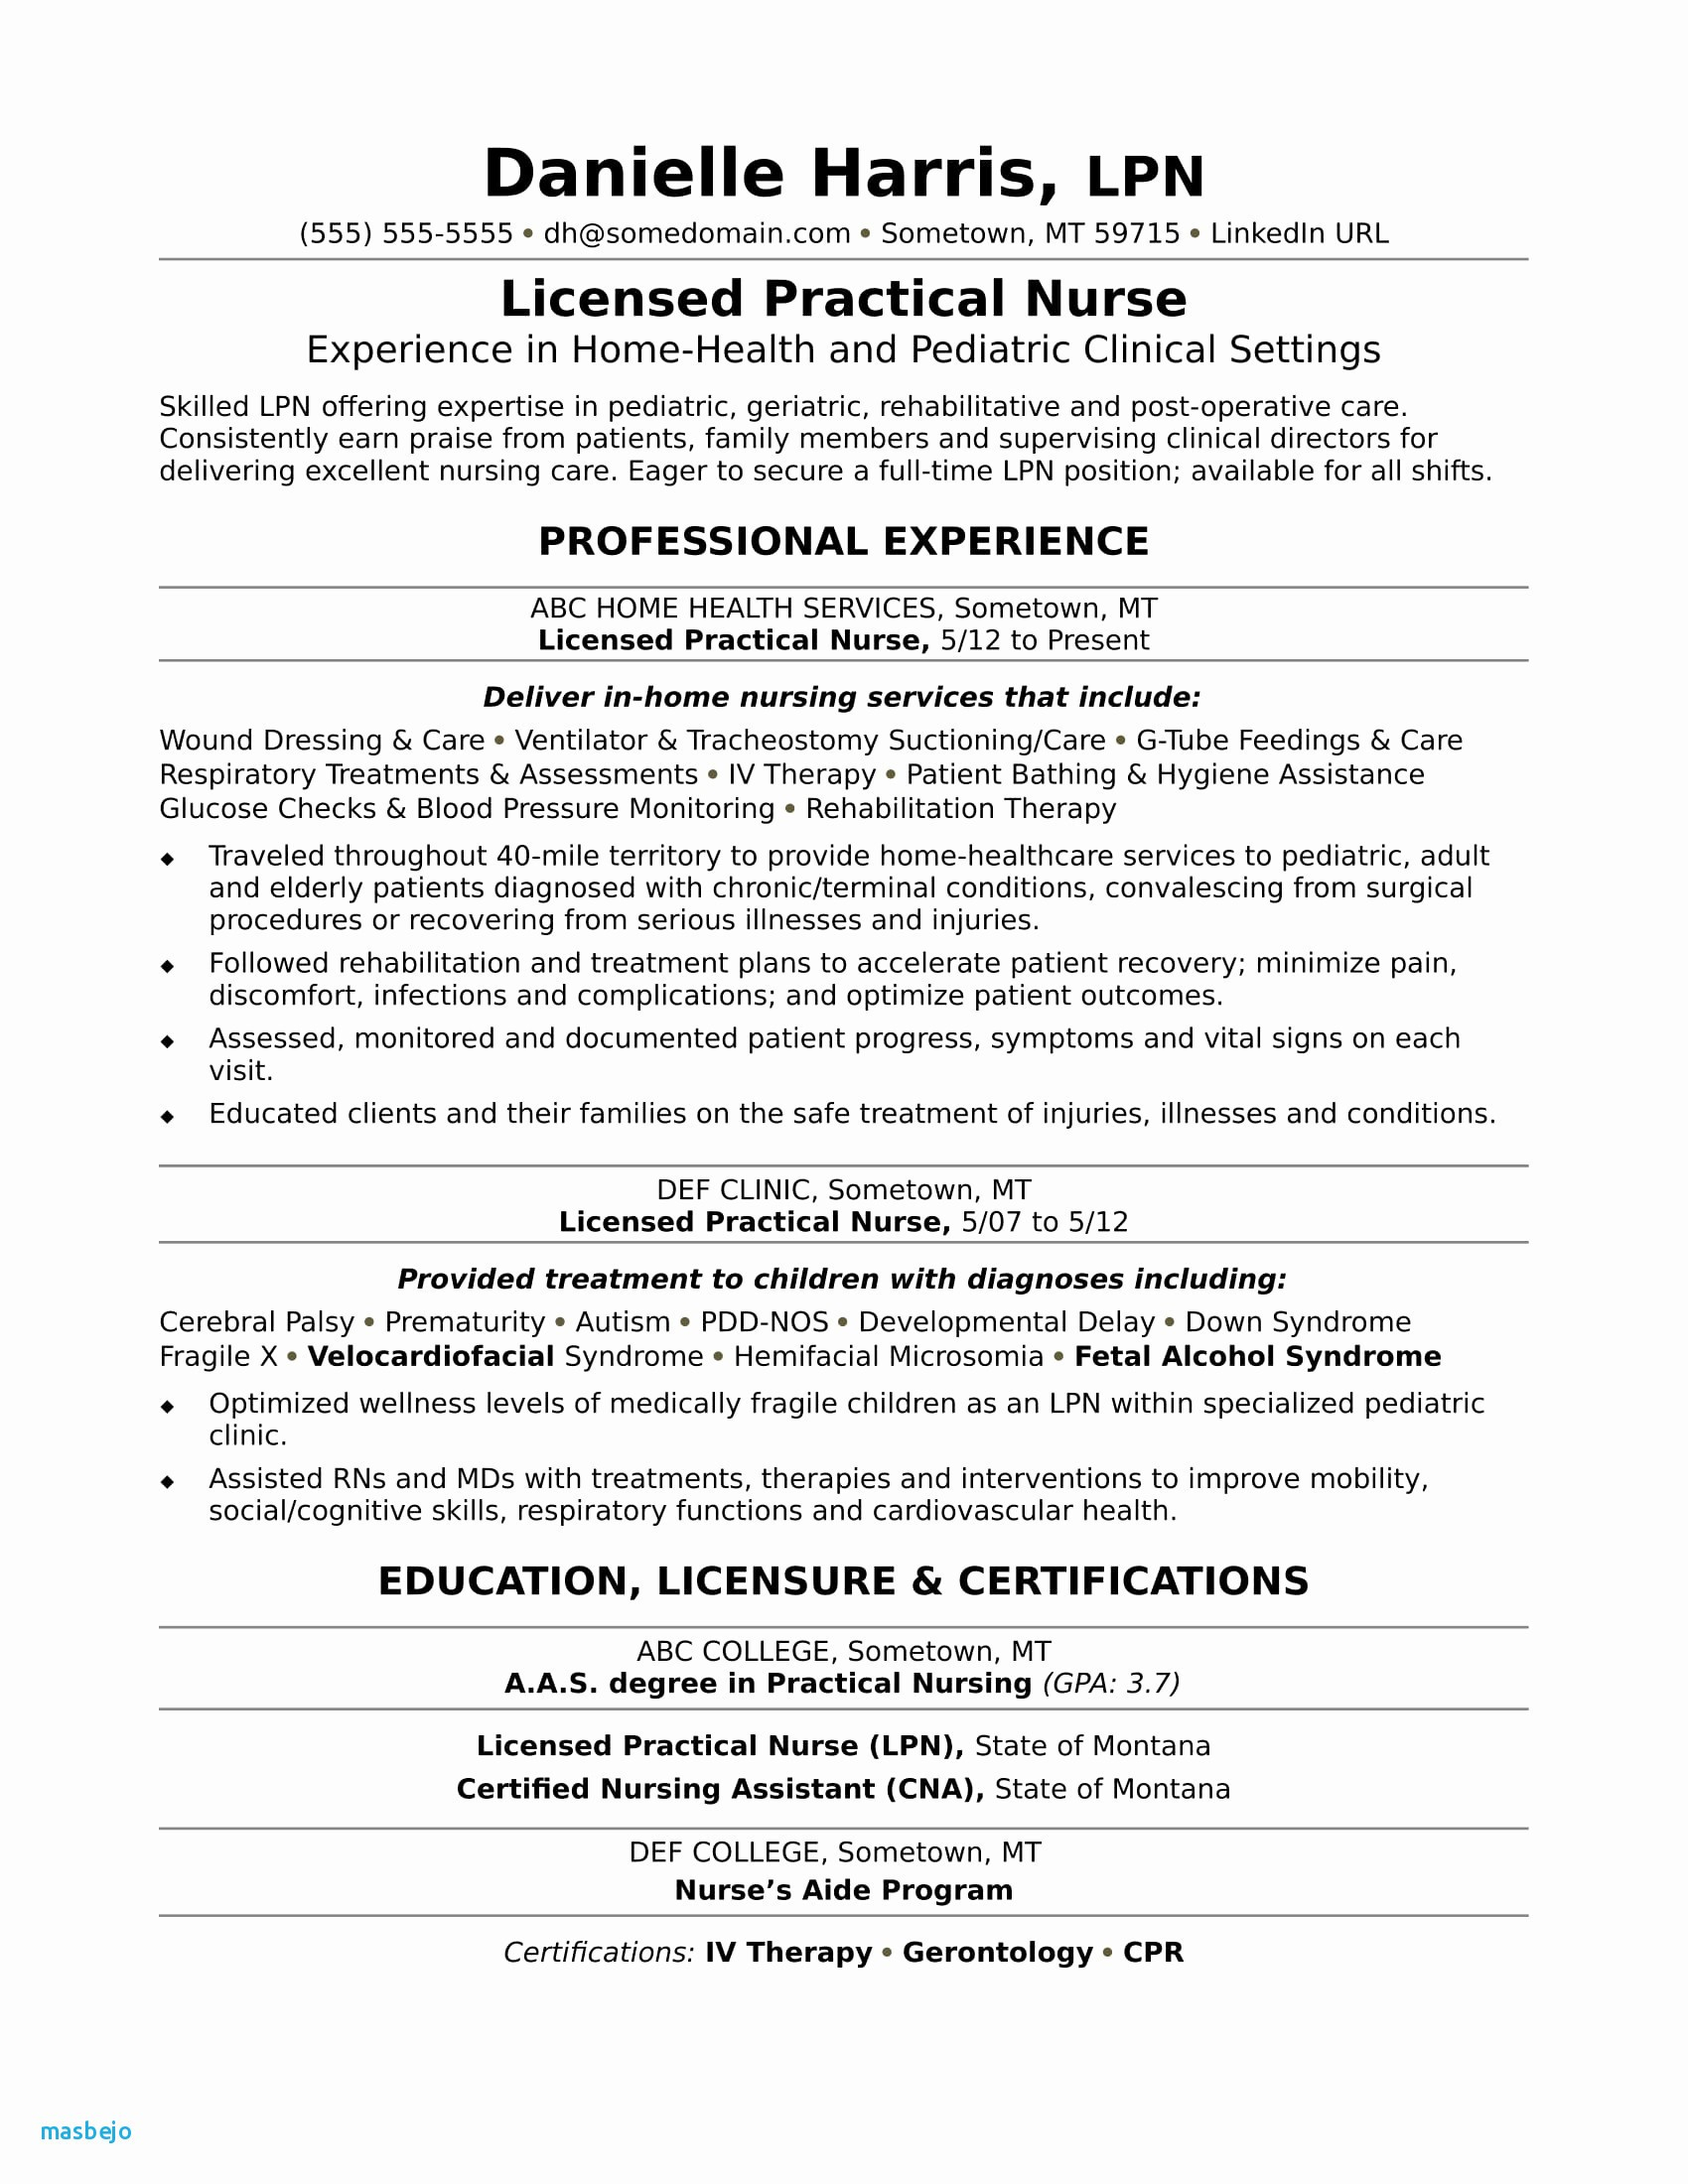 Nursing Student Resume Template - Sample Resume for A New Registered Nurse Resume Resume Examples